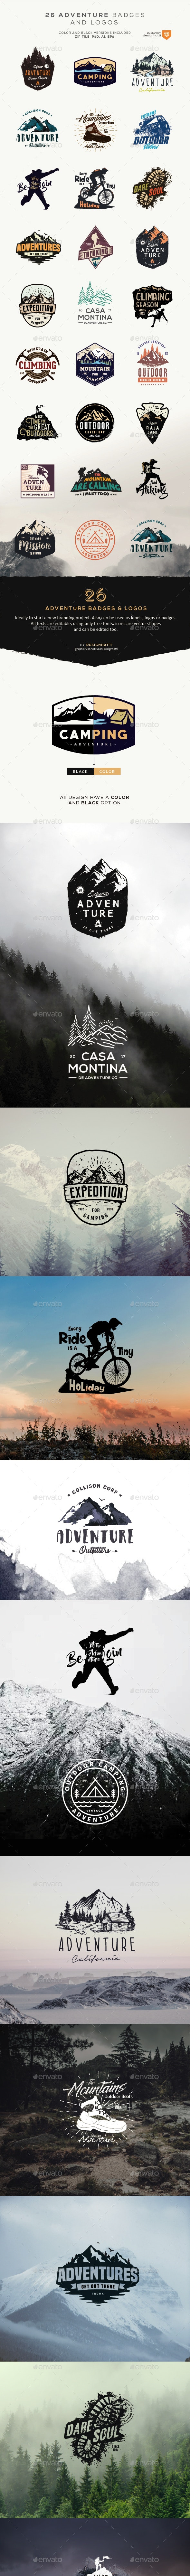 26 Adventure Badges and Logos